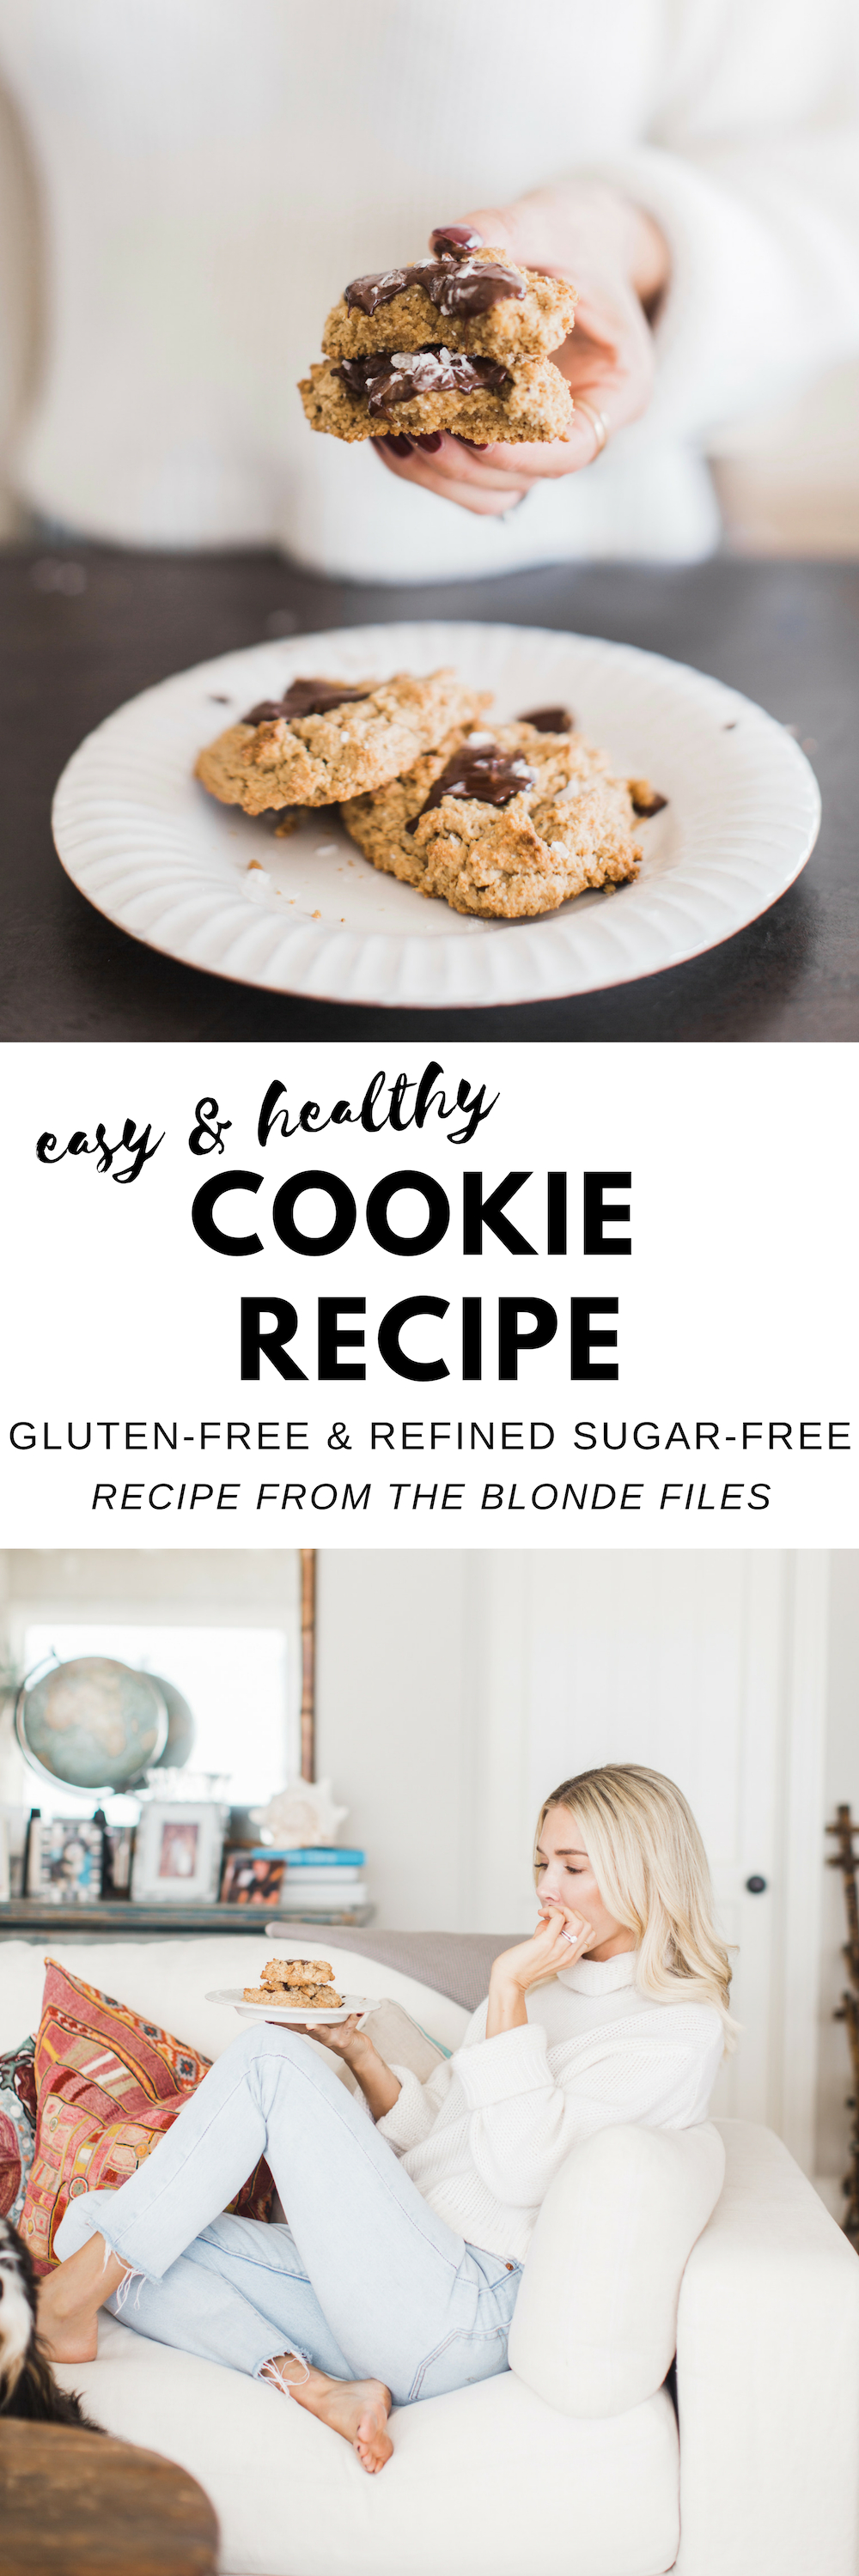 Gluten Free Cookie Recipe from The Blonde Files